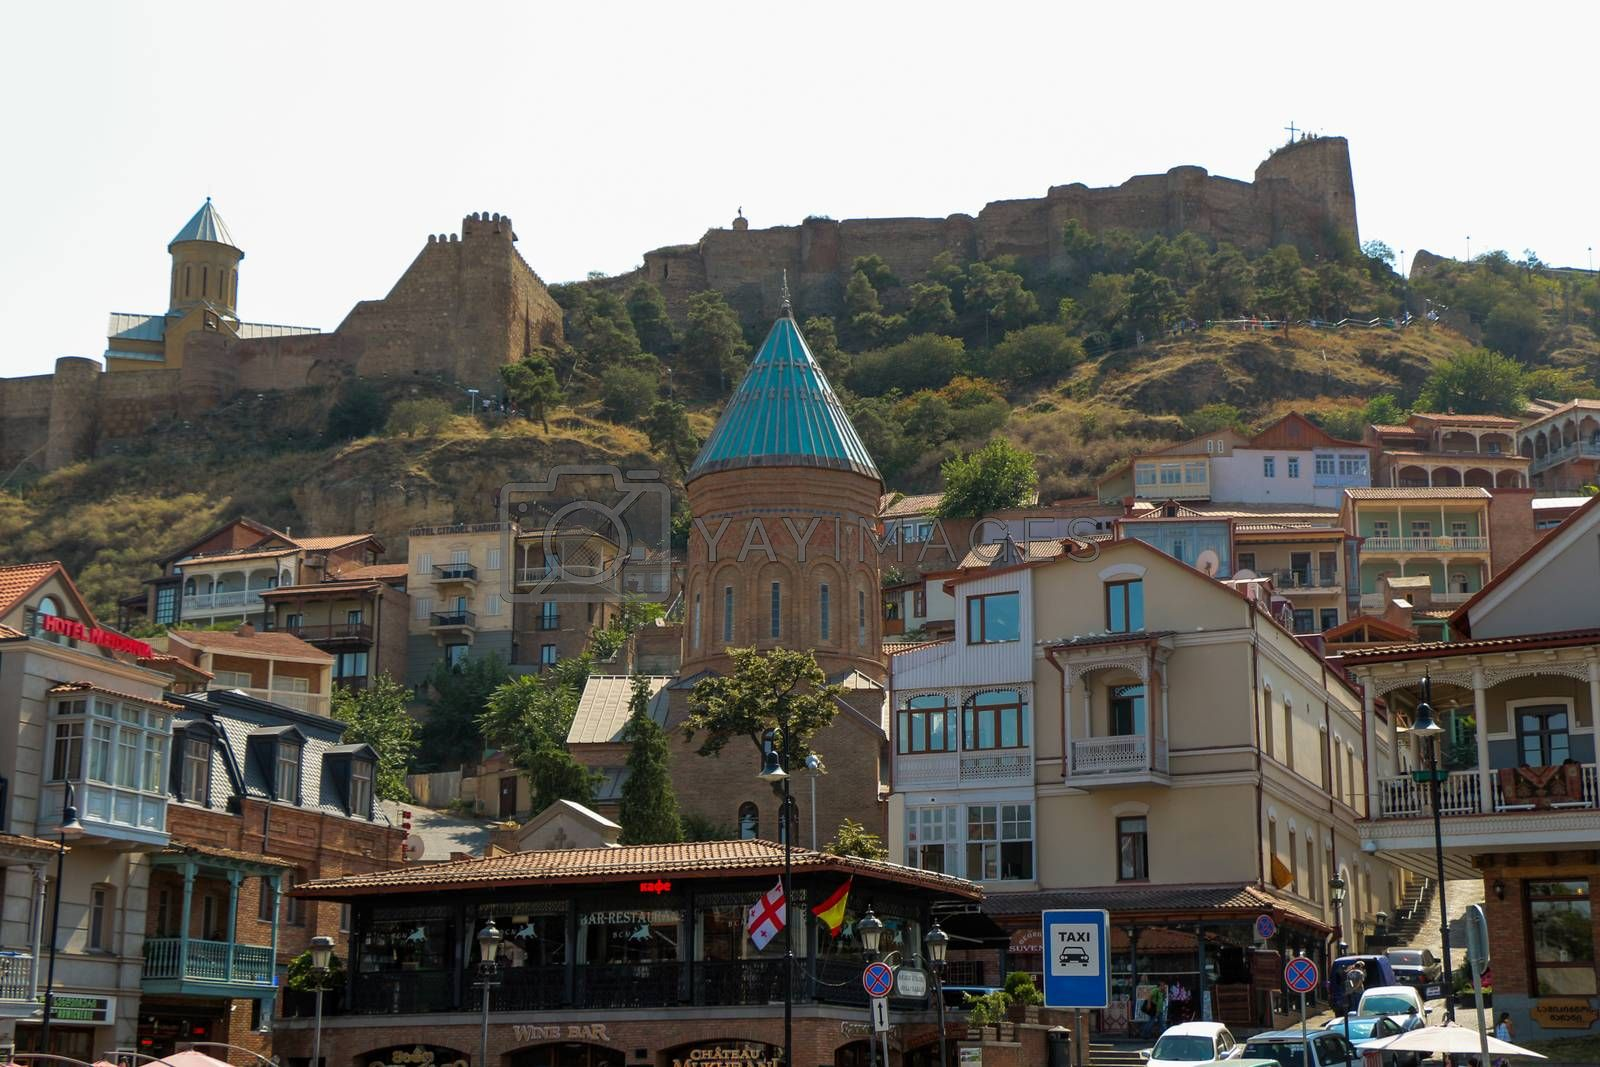 Tbilisi Old Town, the Historic district of the capital of Georgia